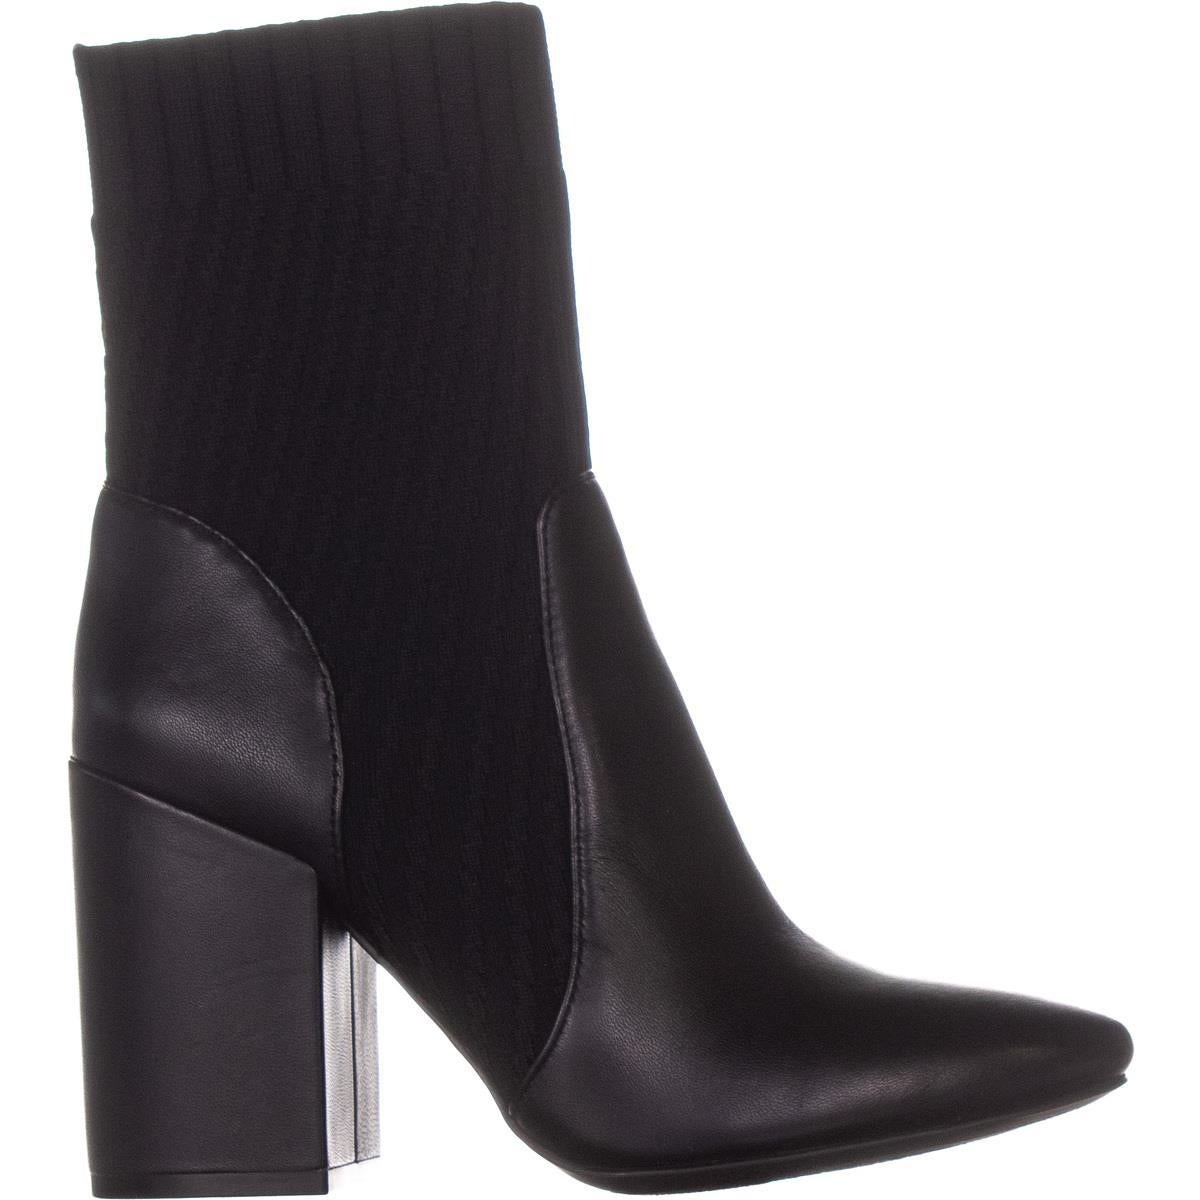 c7aee2514d7 Shop Vince Camuto Diandra Ankle Boots